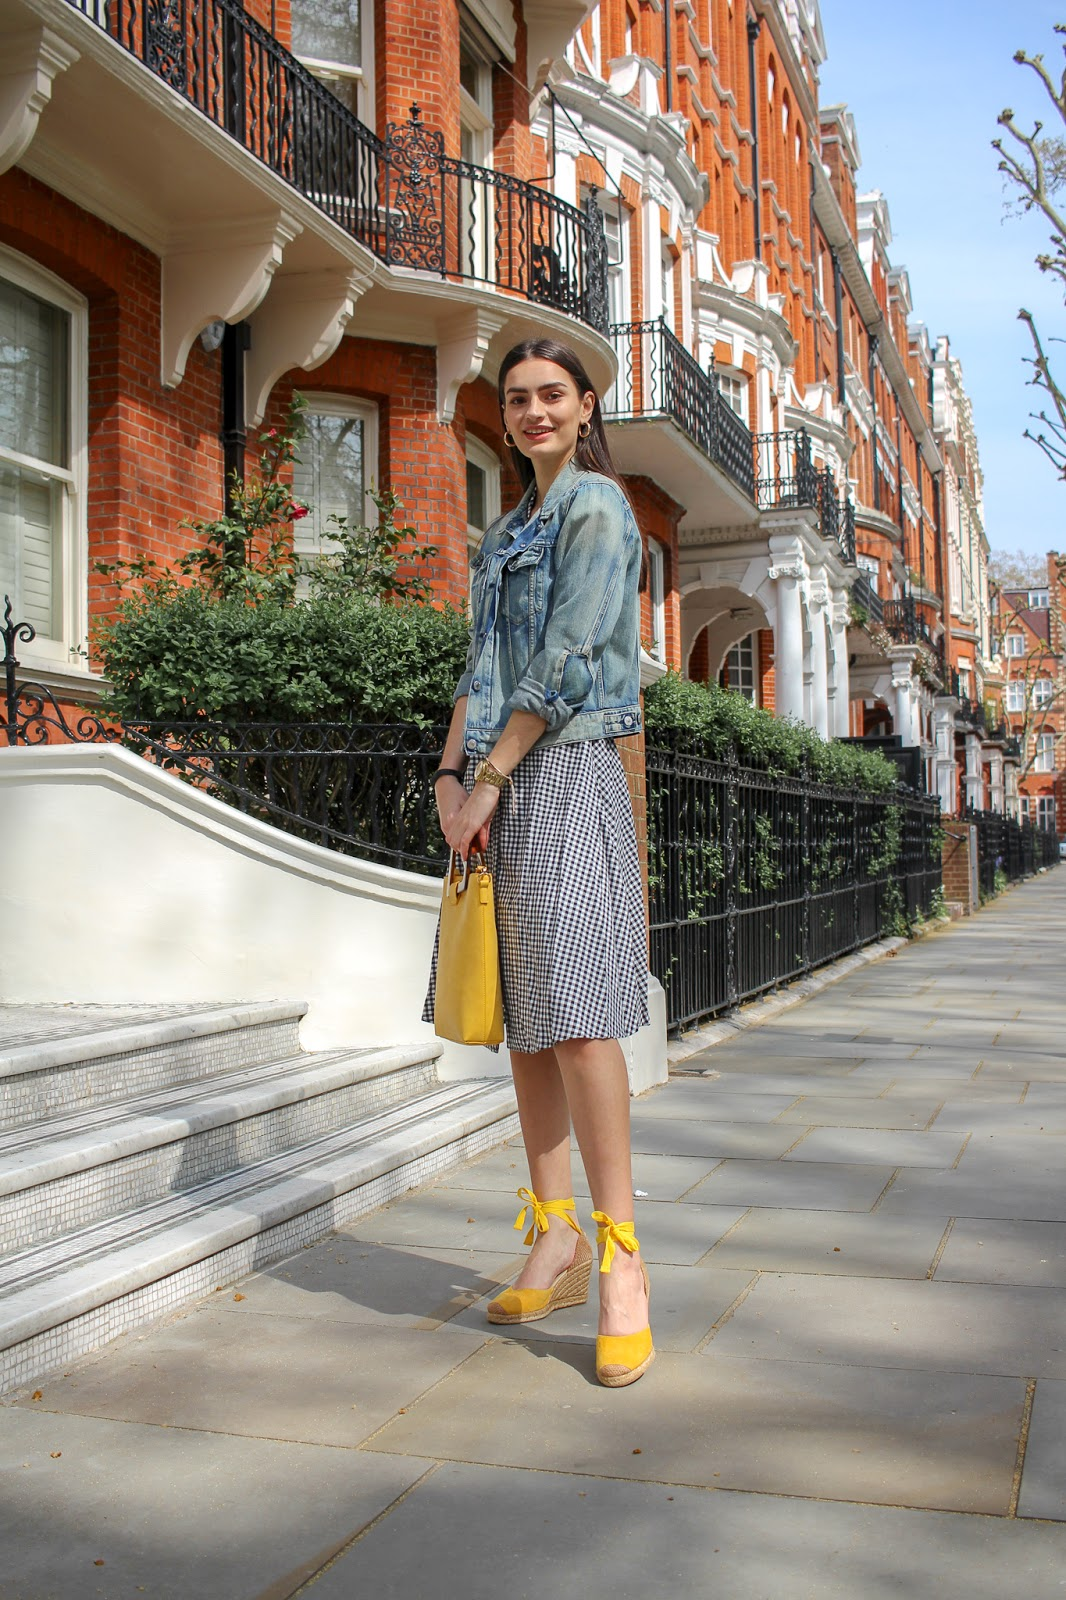 london street style a week off instagram